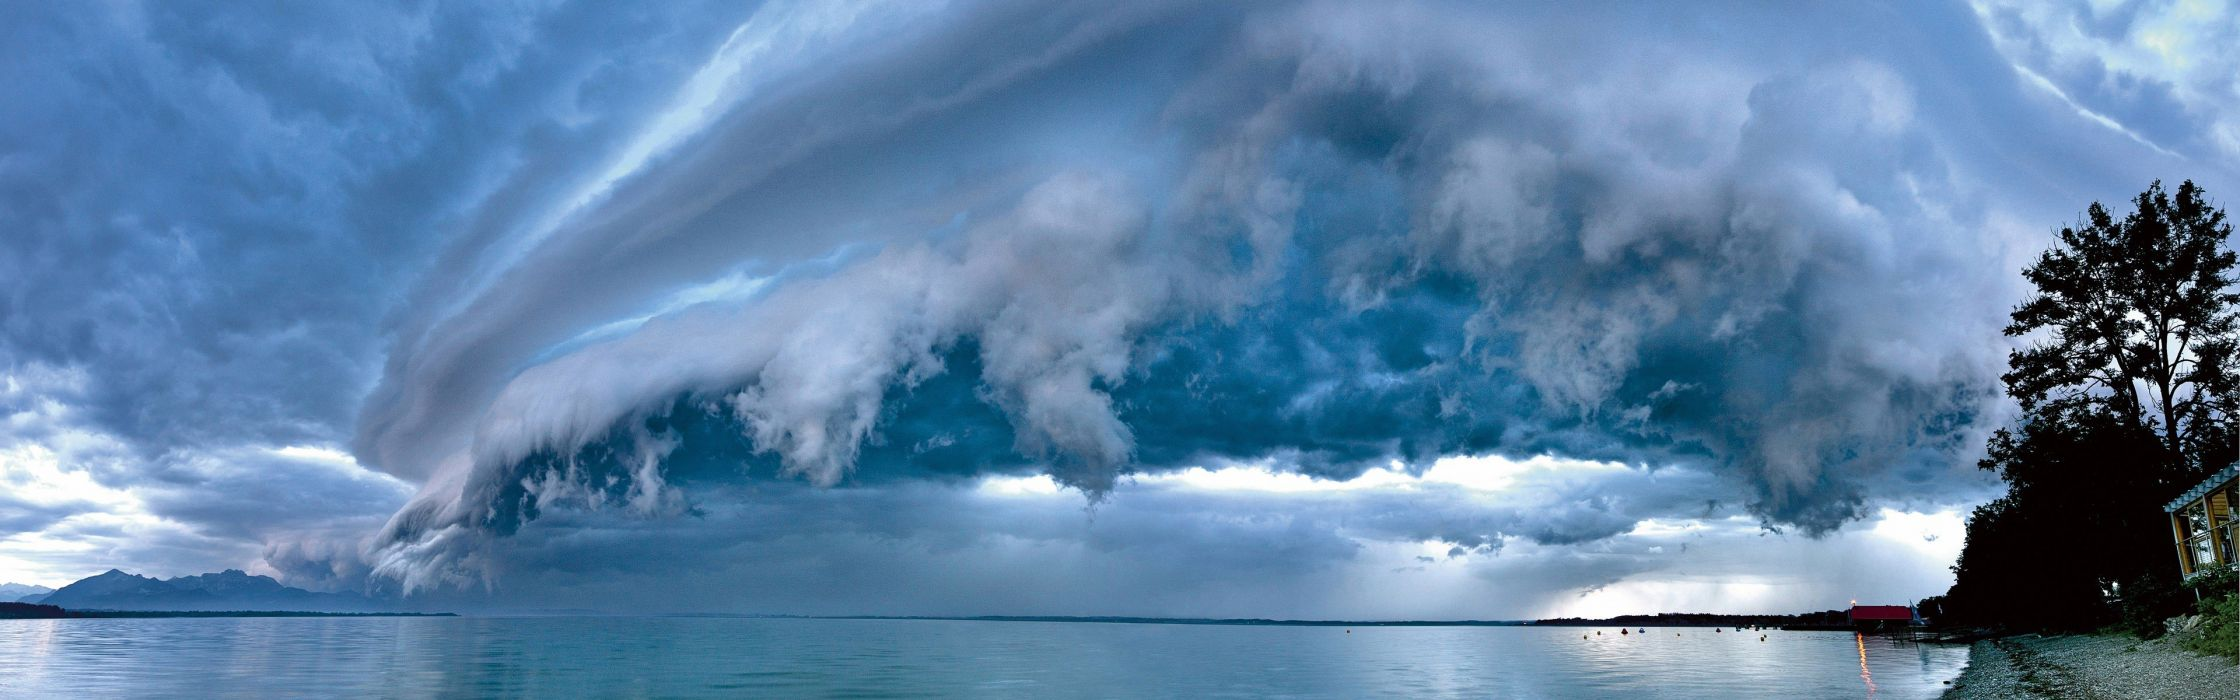 clouds Germany Bavaria panorama overcast skyscapes sea wallpaper